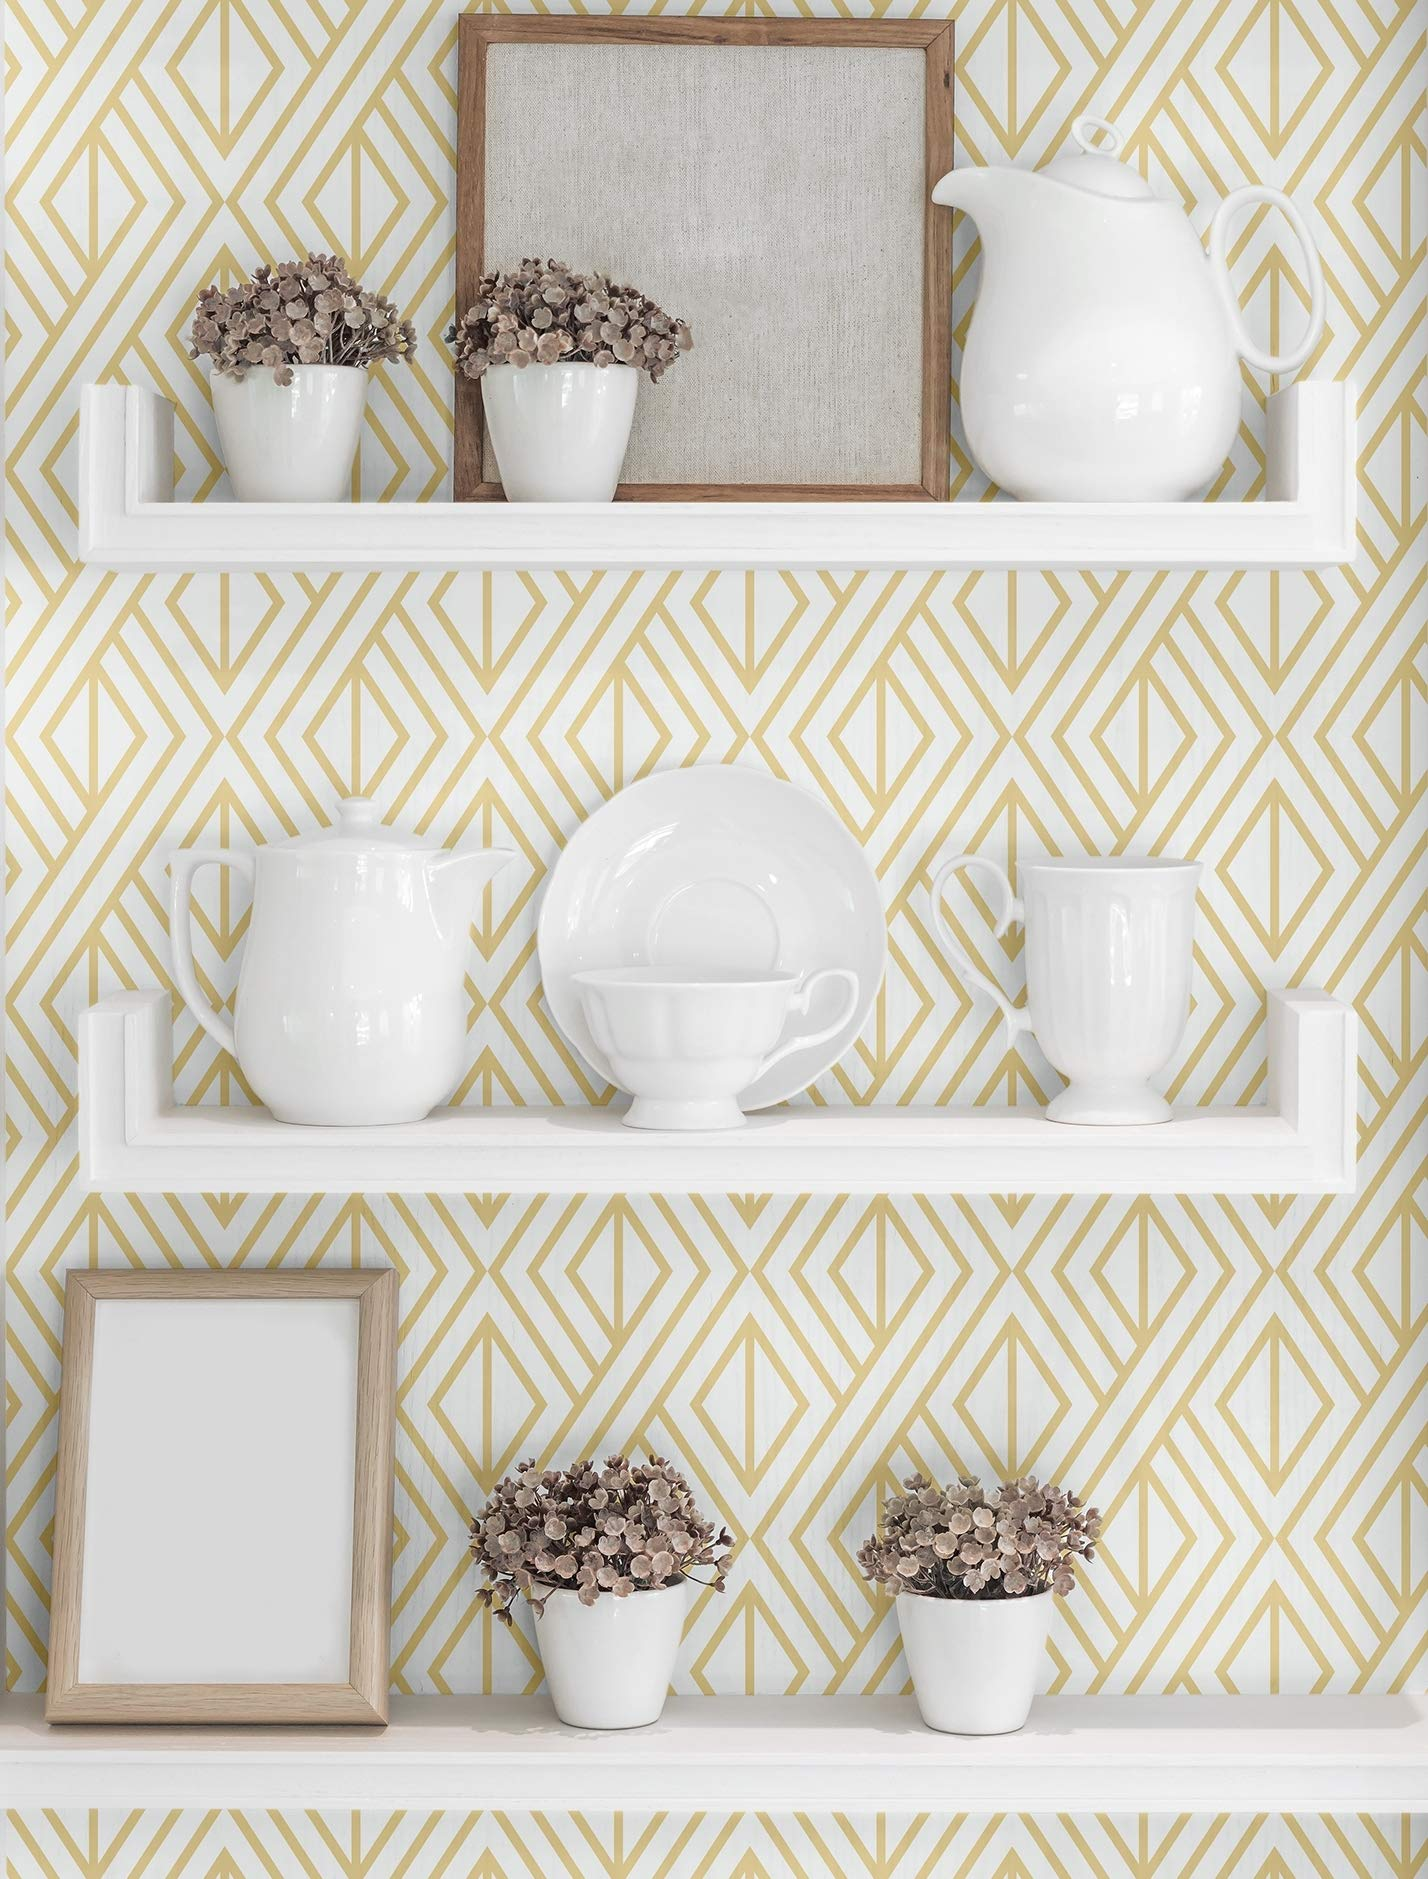 NextWall Diamond Geometric Peel and Stick Wallpaper Decor (Gold and White)